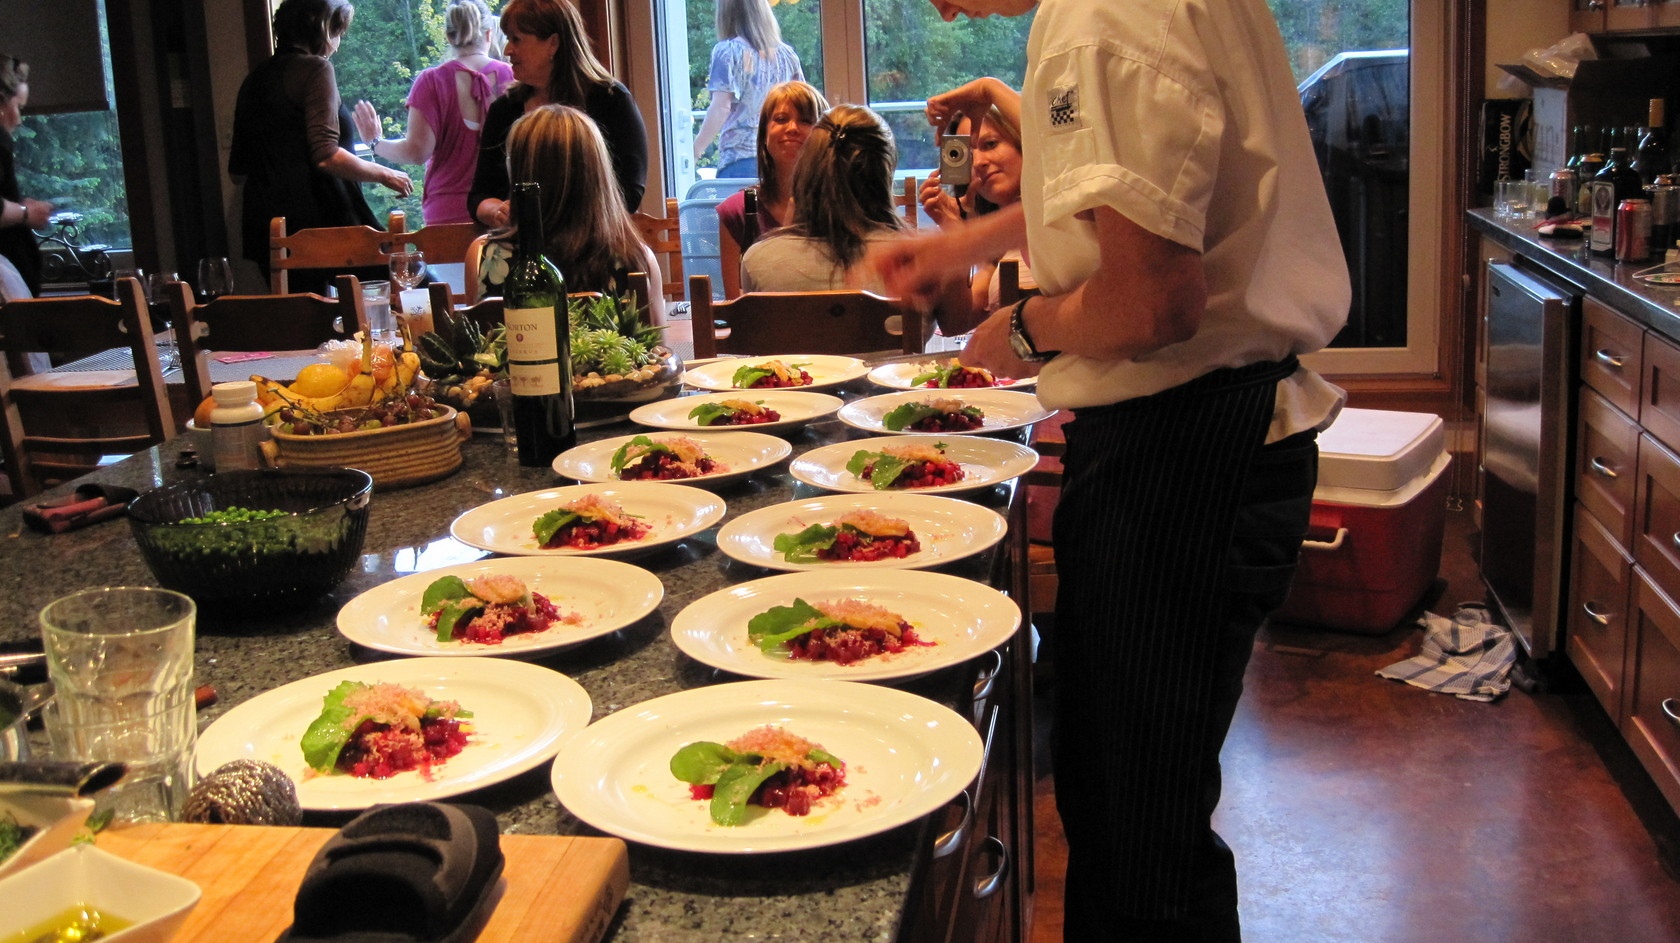 Romantic fun vancouver restaurant new catering company for Catering companies